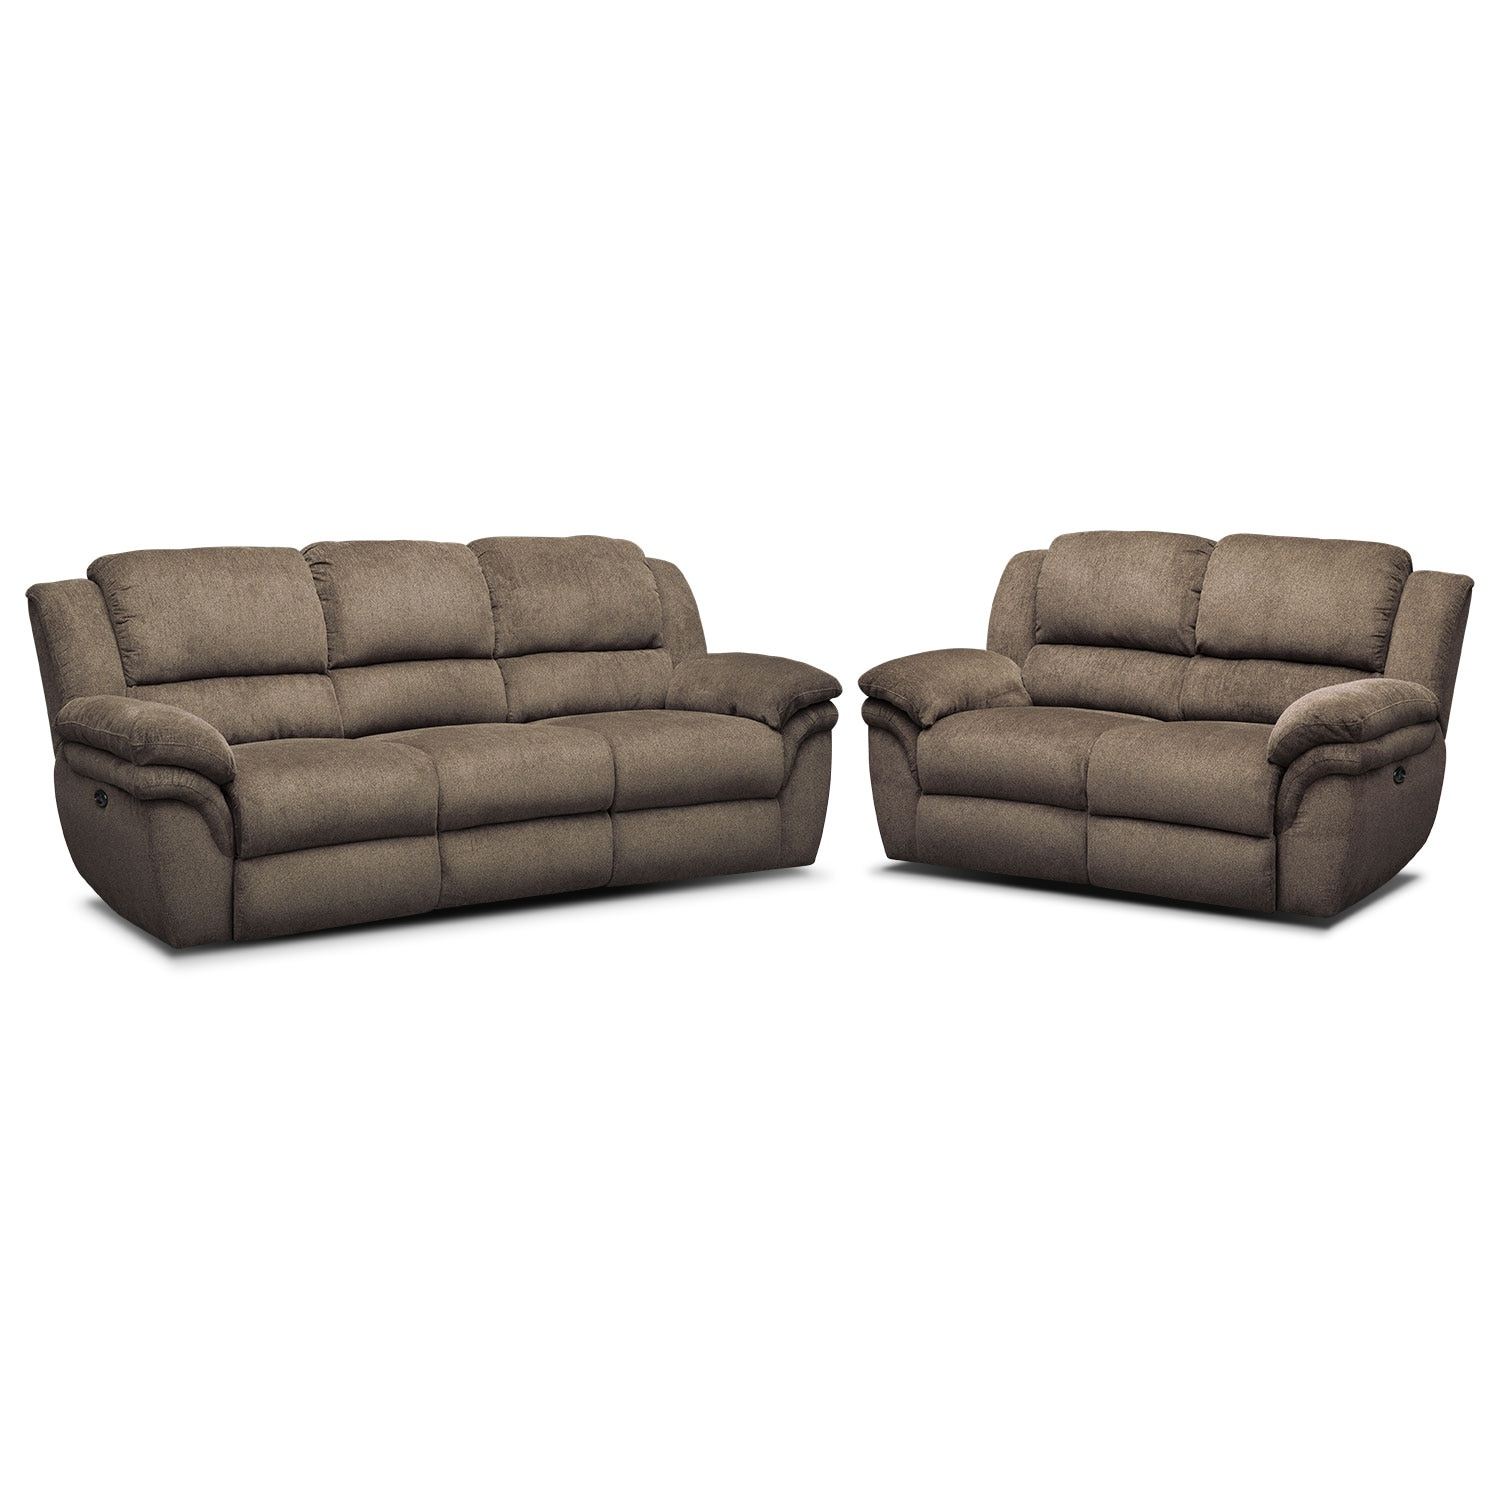 Aldo Power Reclining Sofa And Loveseat Set Mocha American Signature Furniture